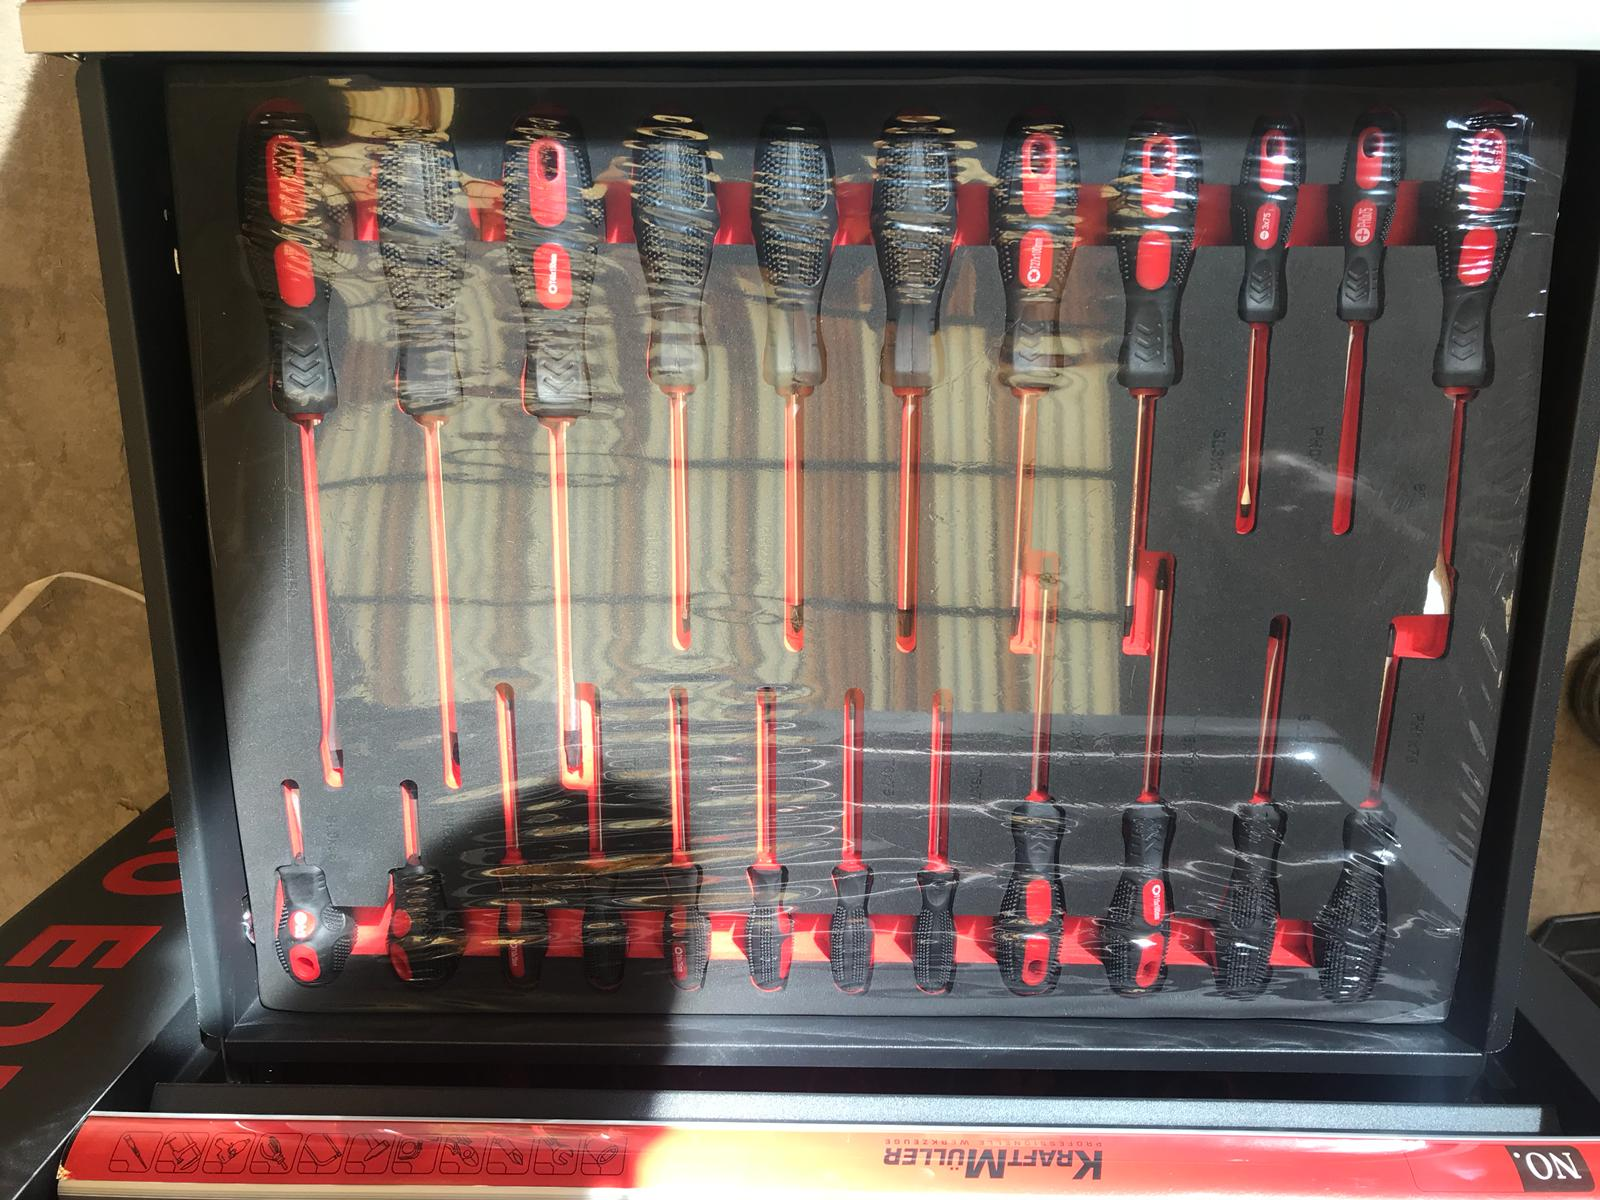 Lot 10053 - V Brand New Seven Drawer Locking Garage Tool Cabinet With Lockable Casters-Seven EVA Drawers of